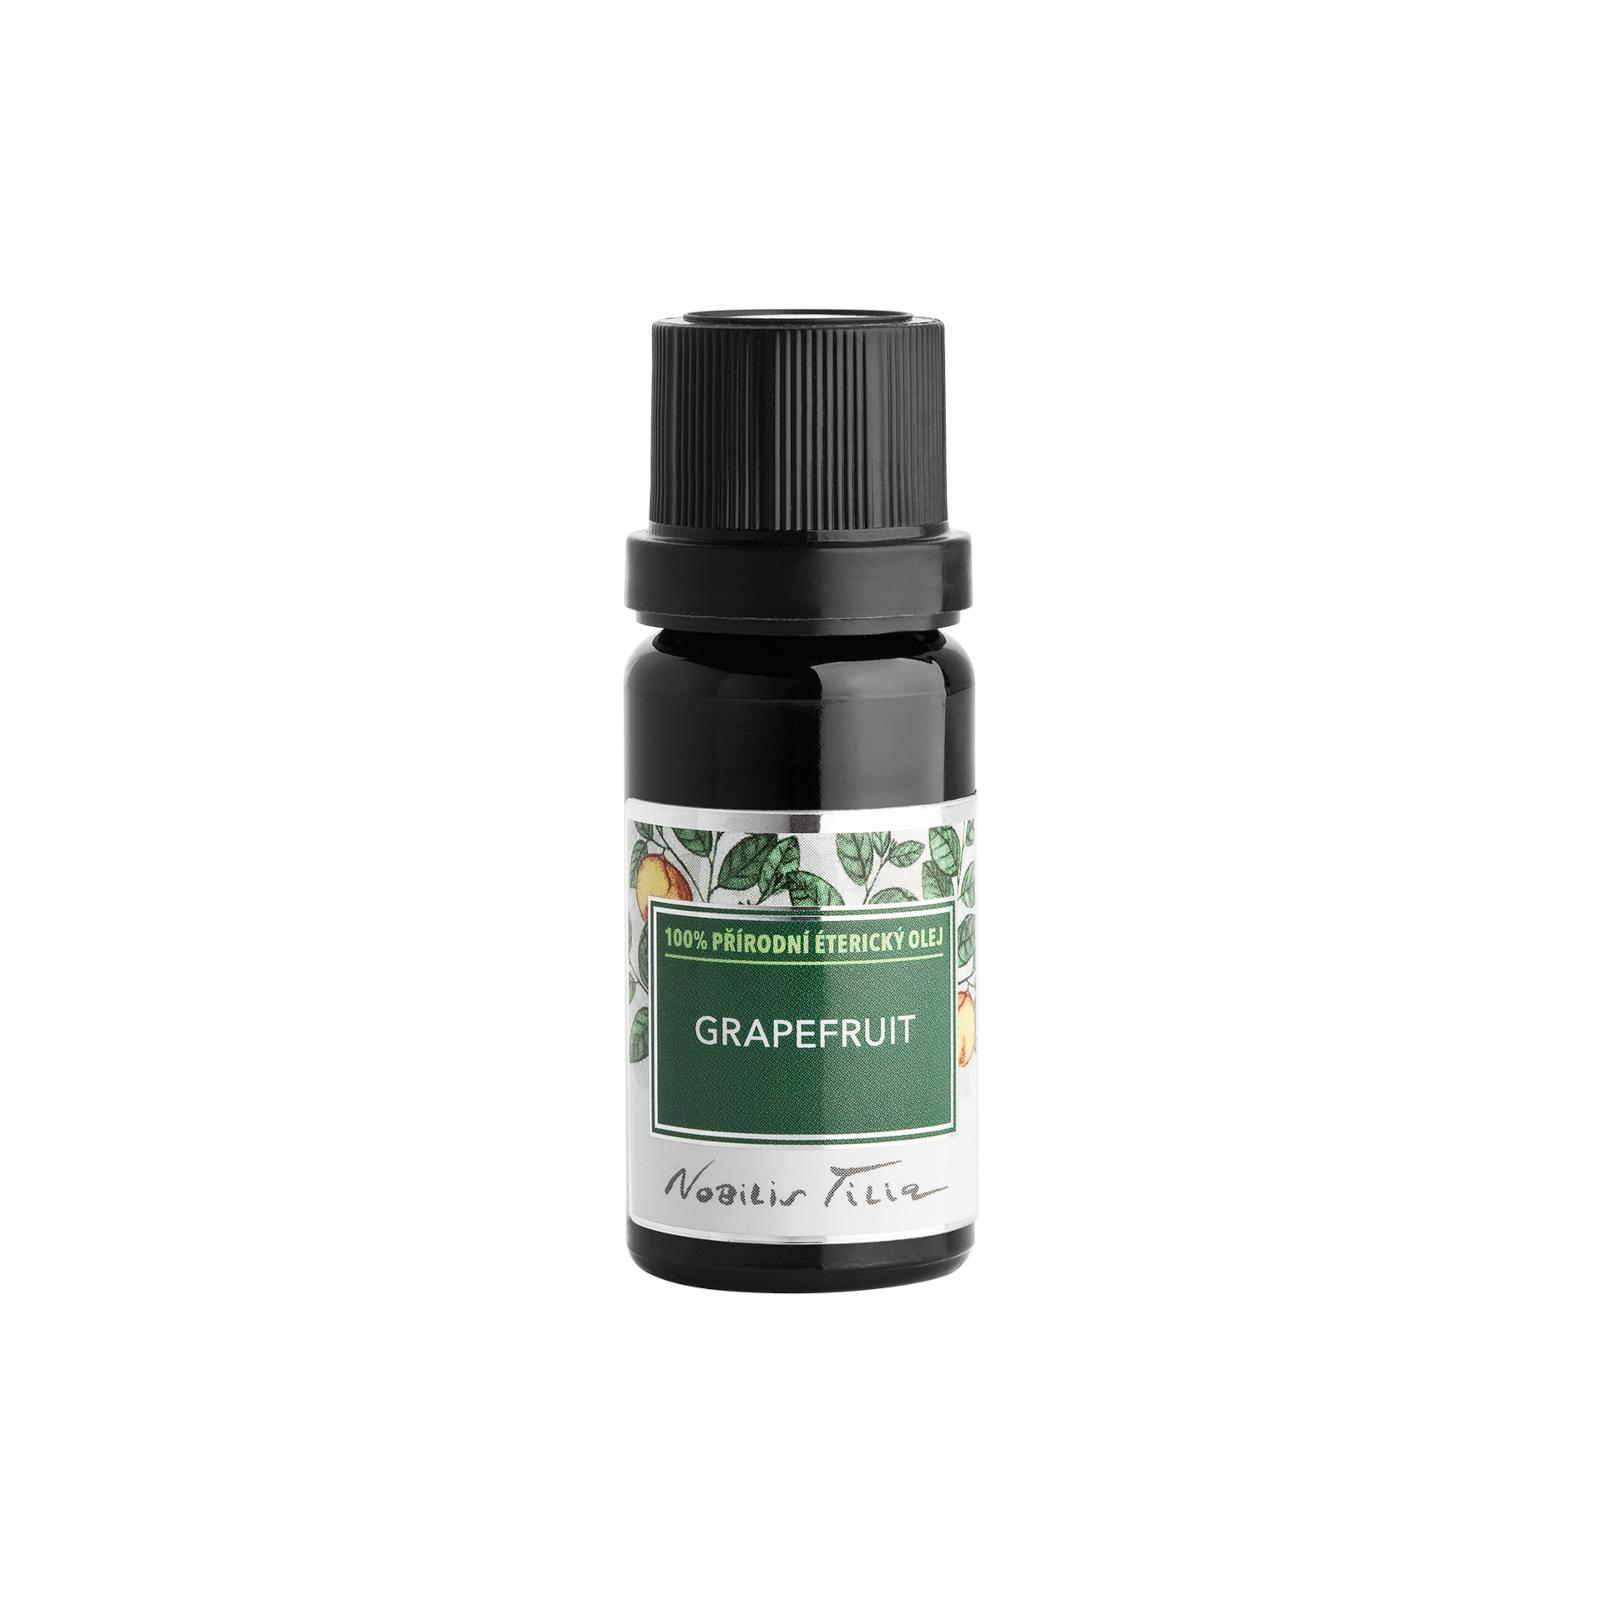 Nobilis Tilia Grapefruit 10 ml